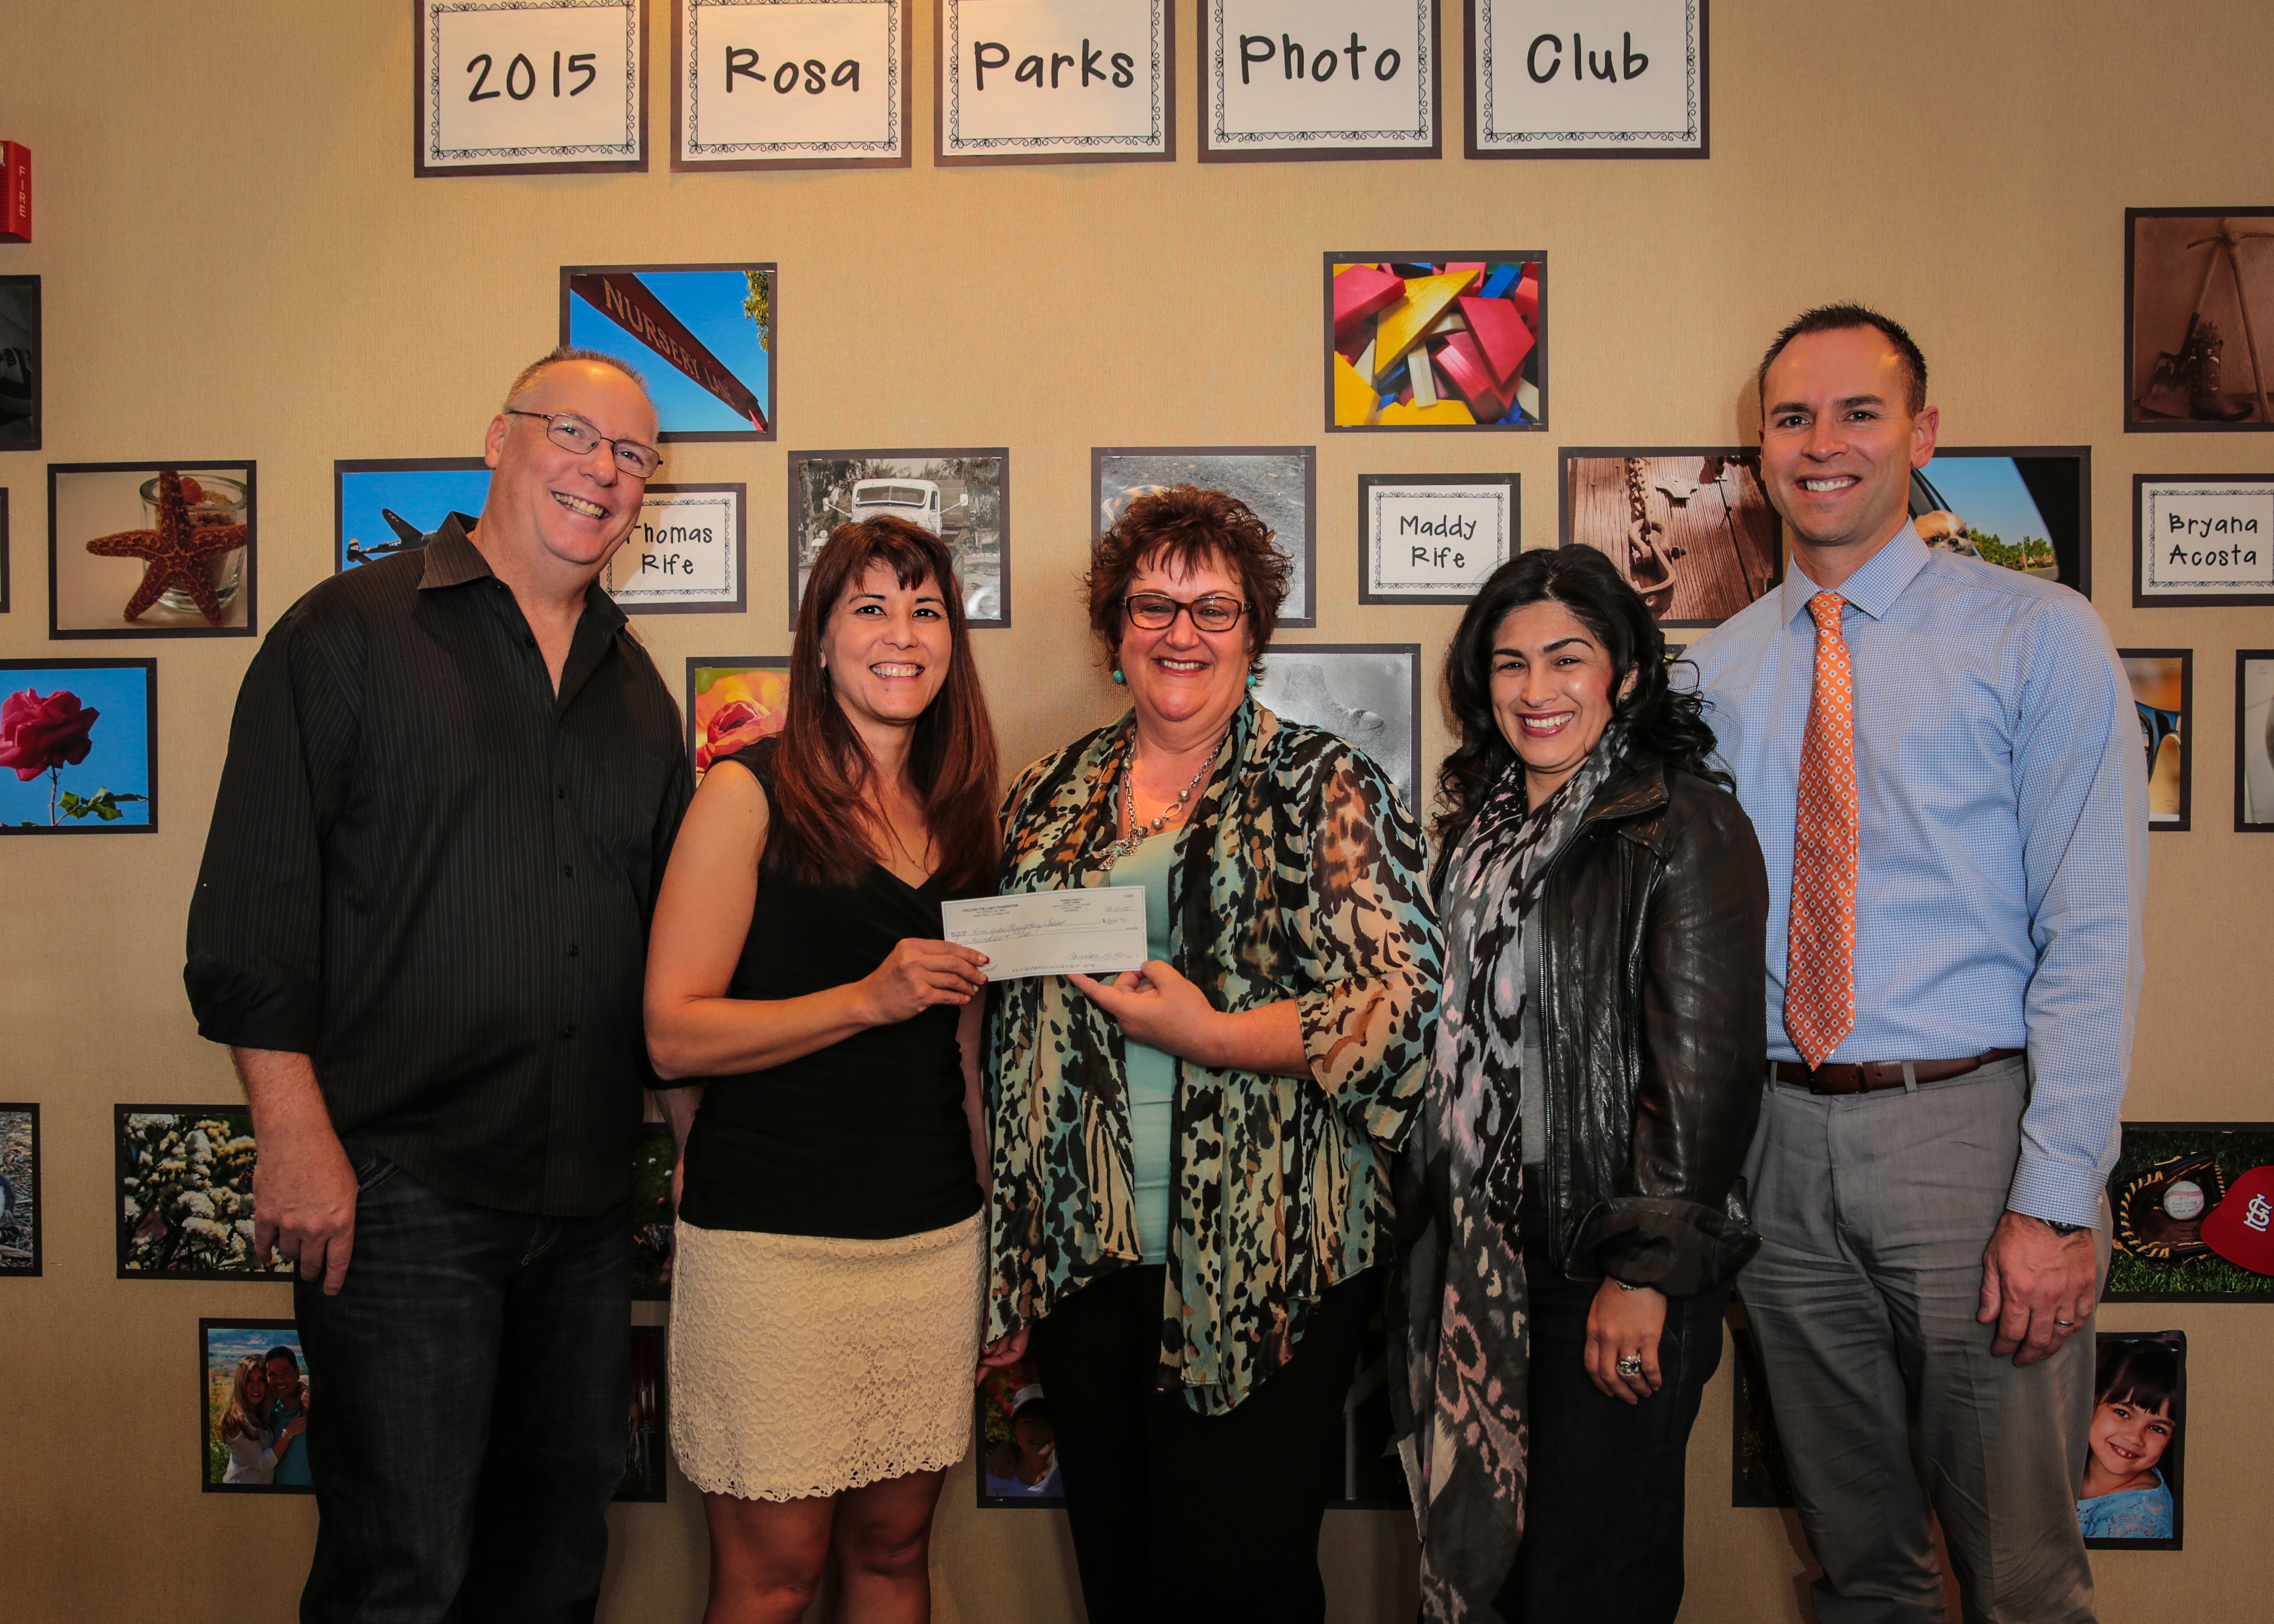 Local Elementary School Receives Photography Club Grant